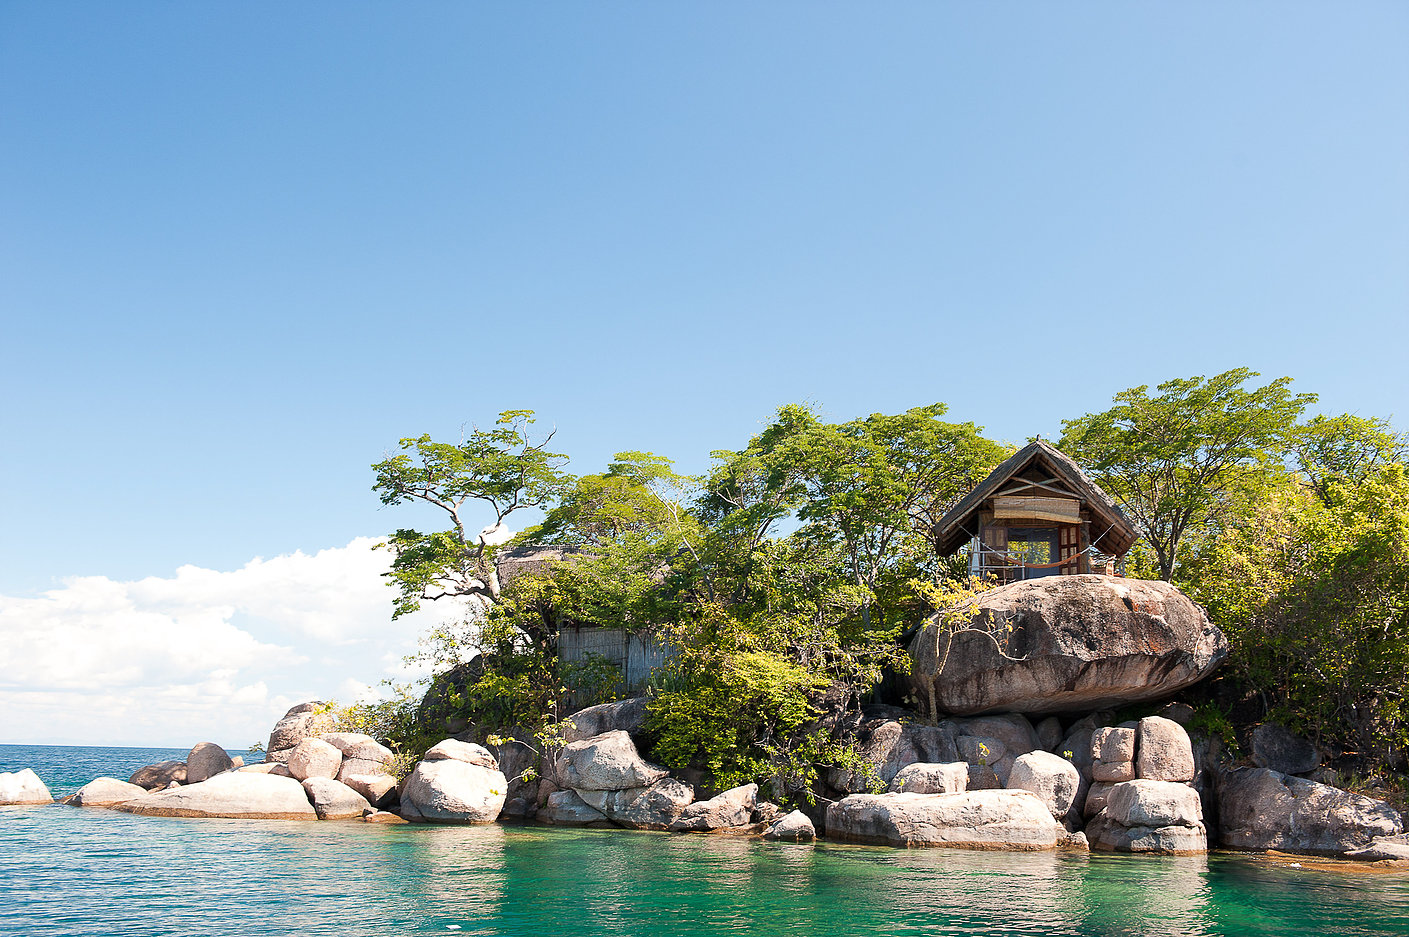 mumbo island lodge lake malawi6